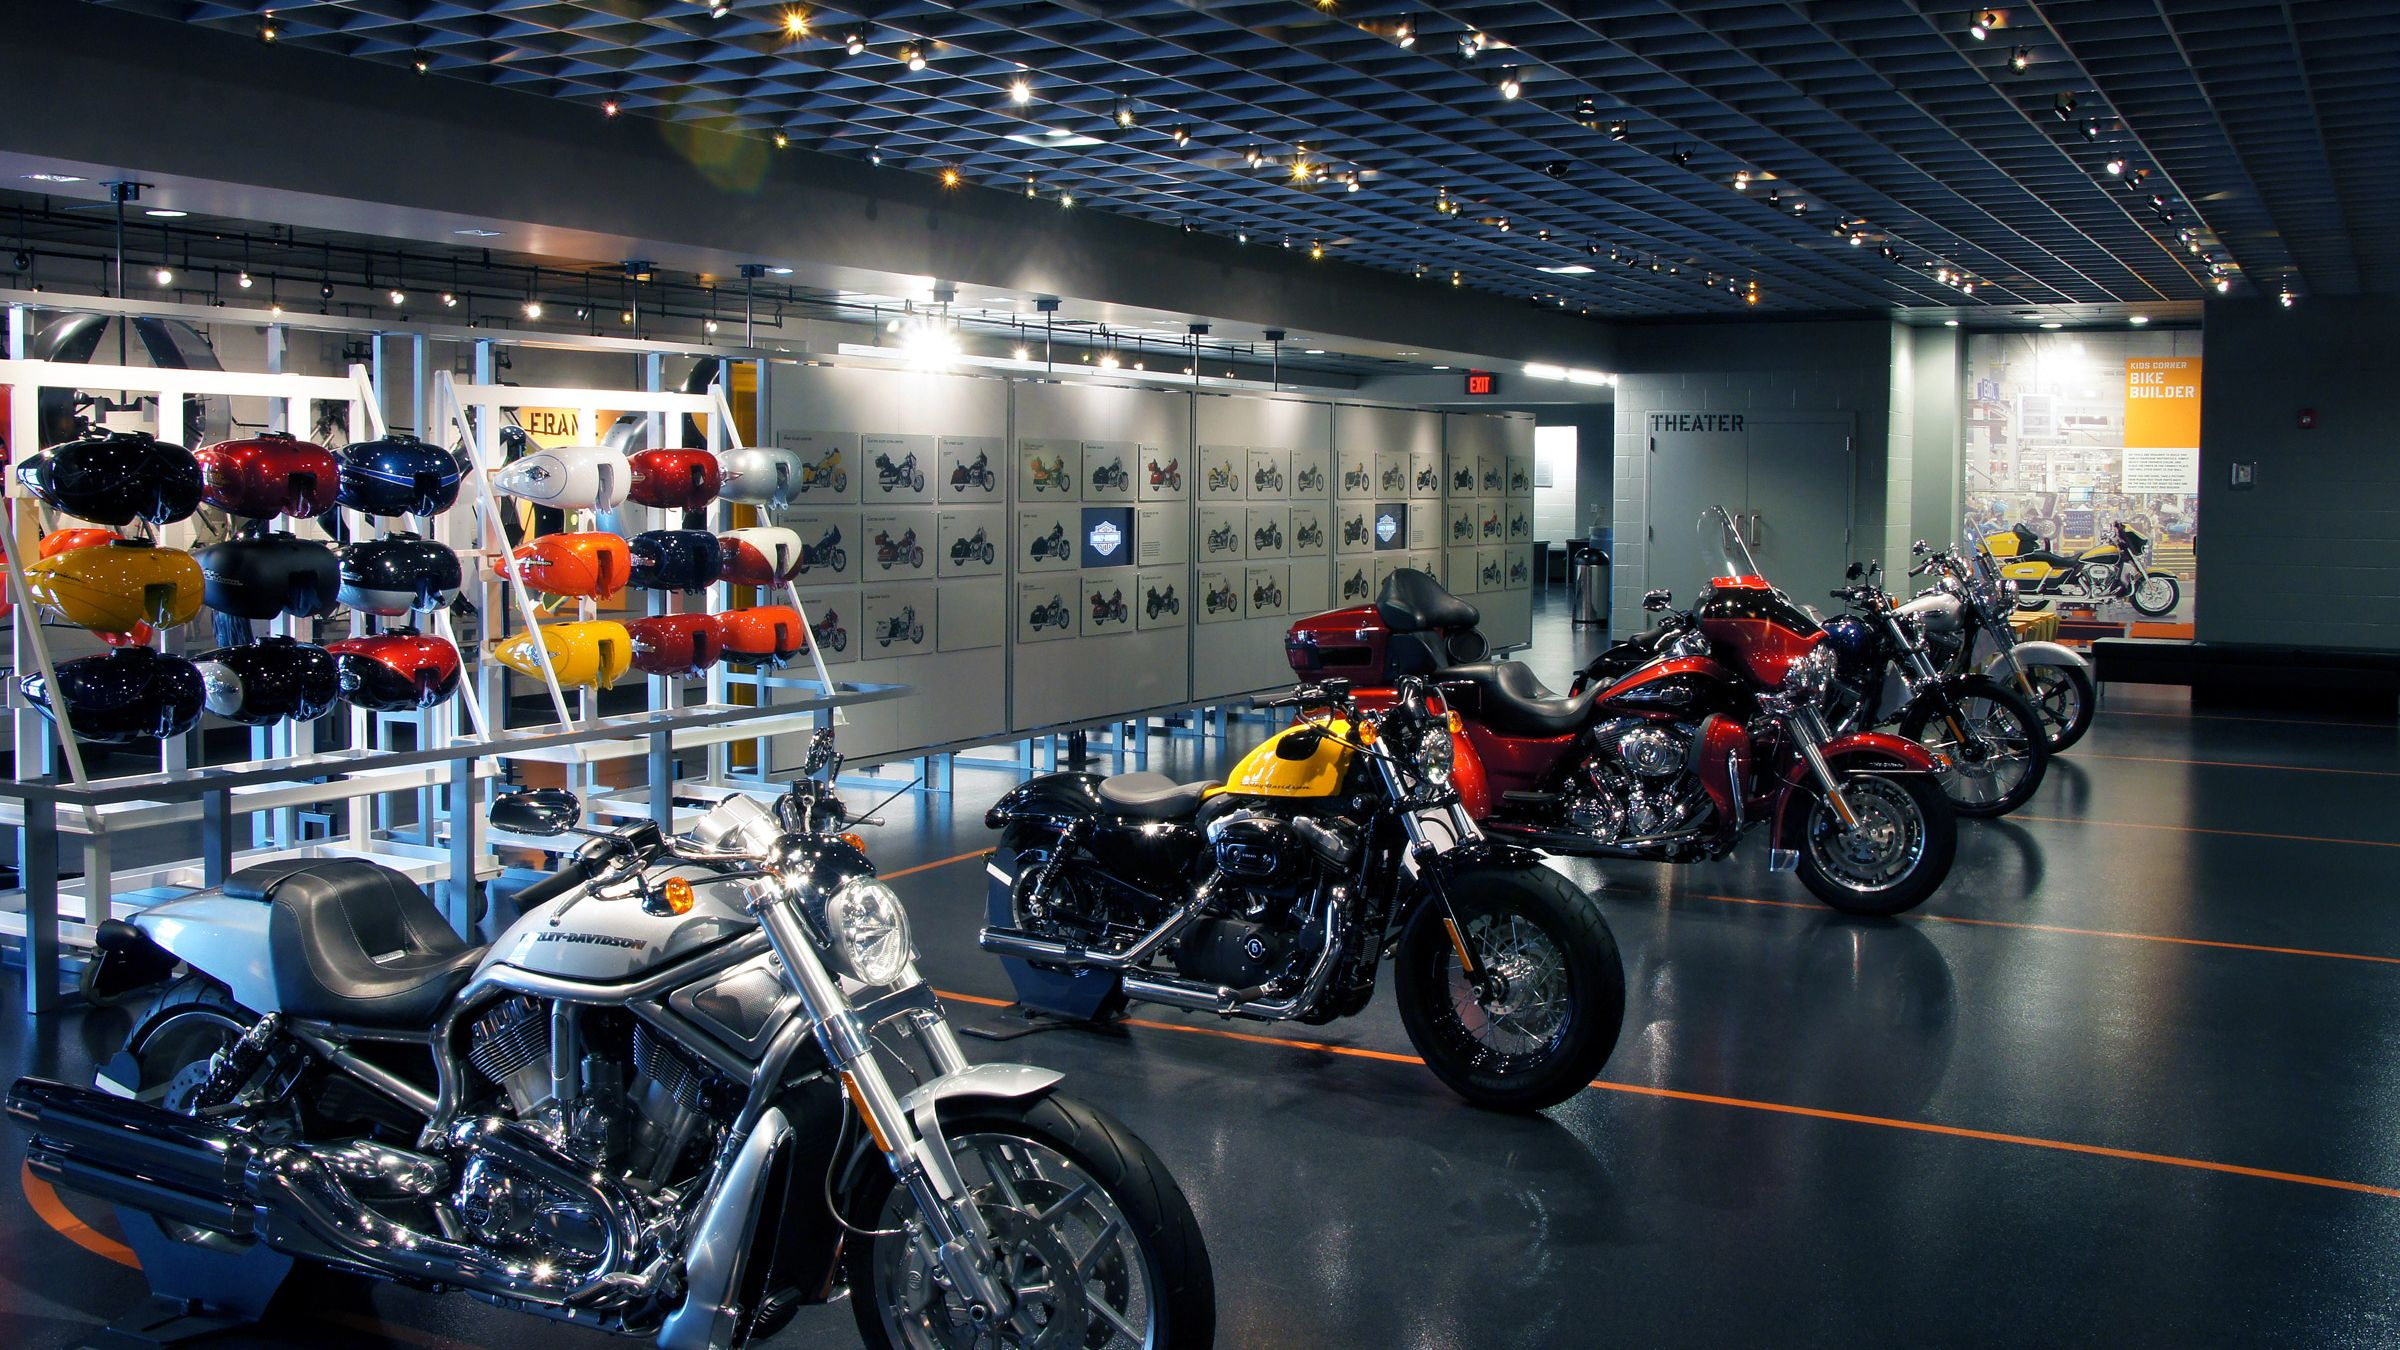 Harley closes one of its main factories what does it mean